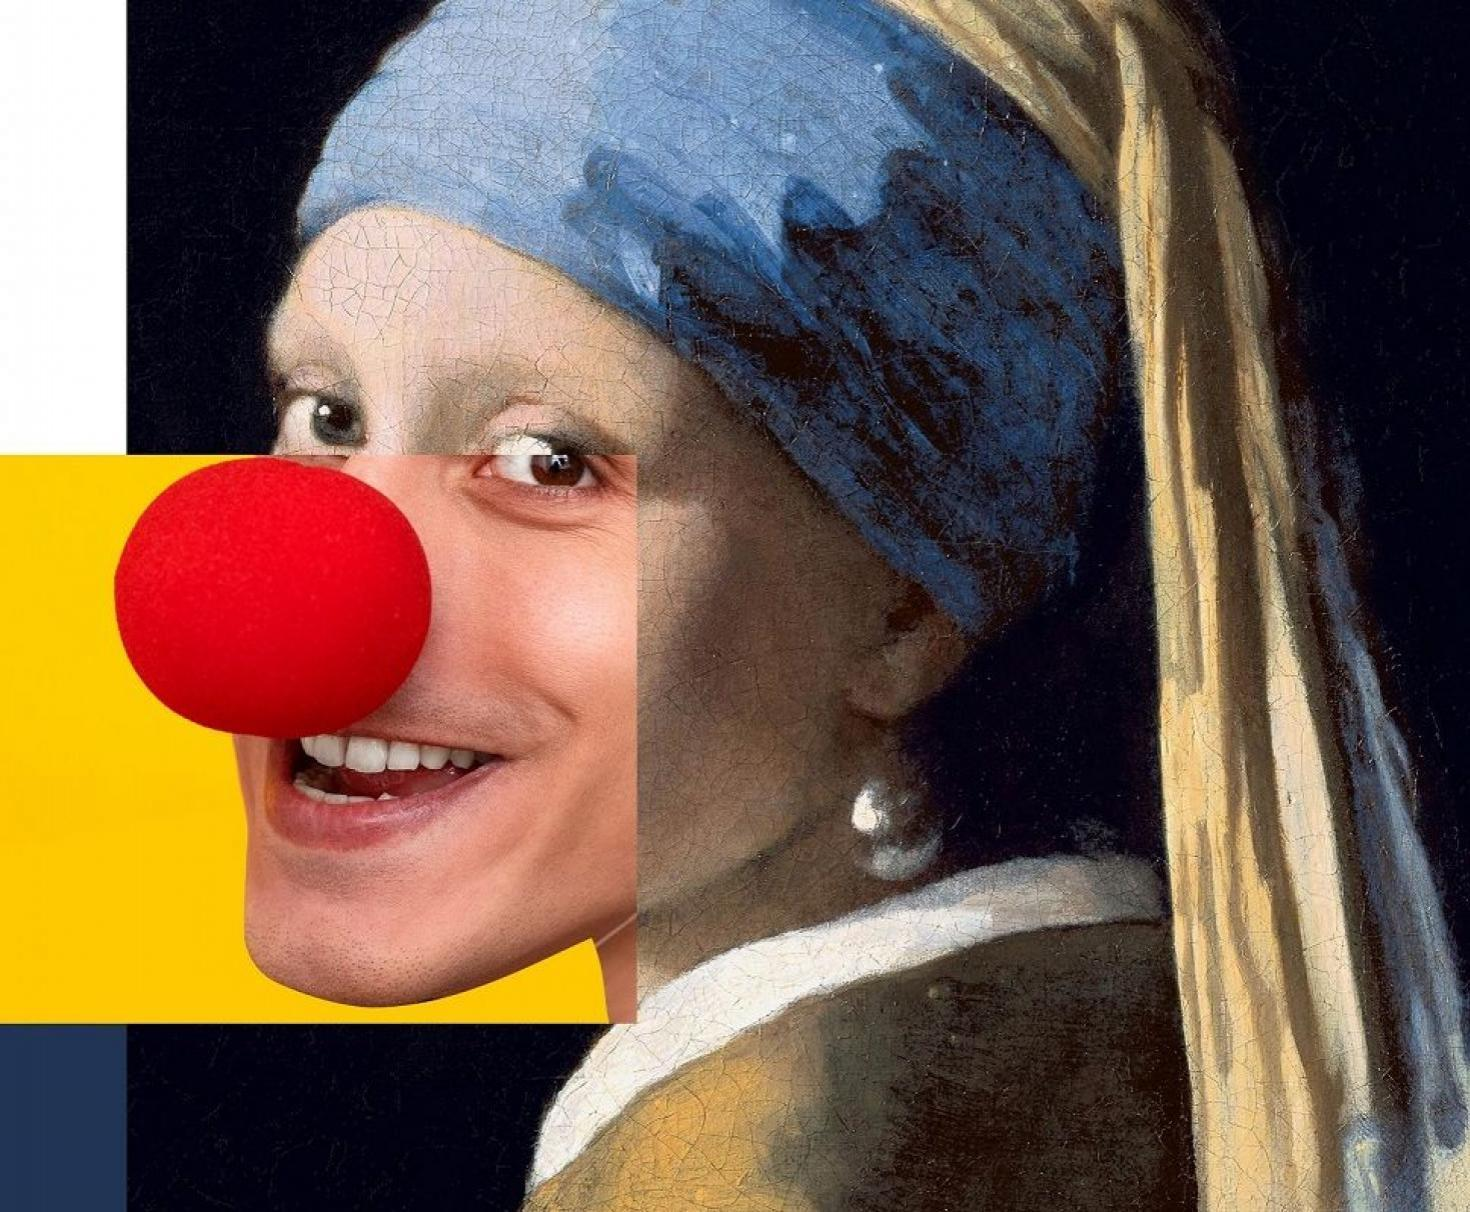 vermeer leany gyongy fulbevaloval hey reilly